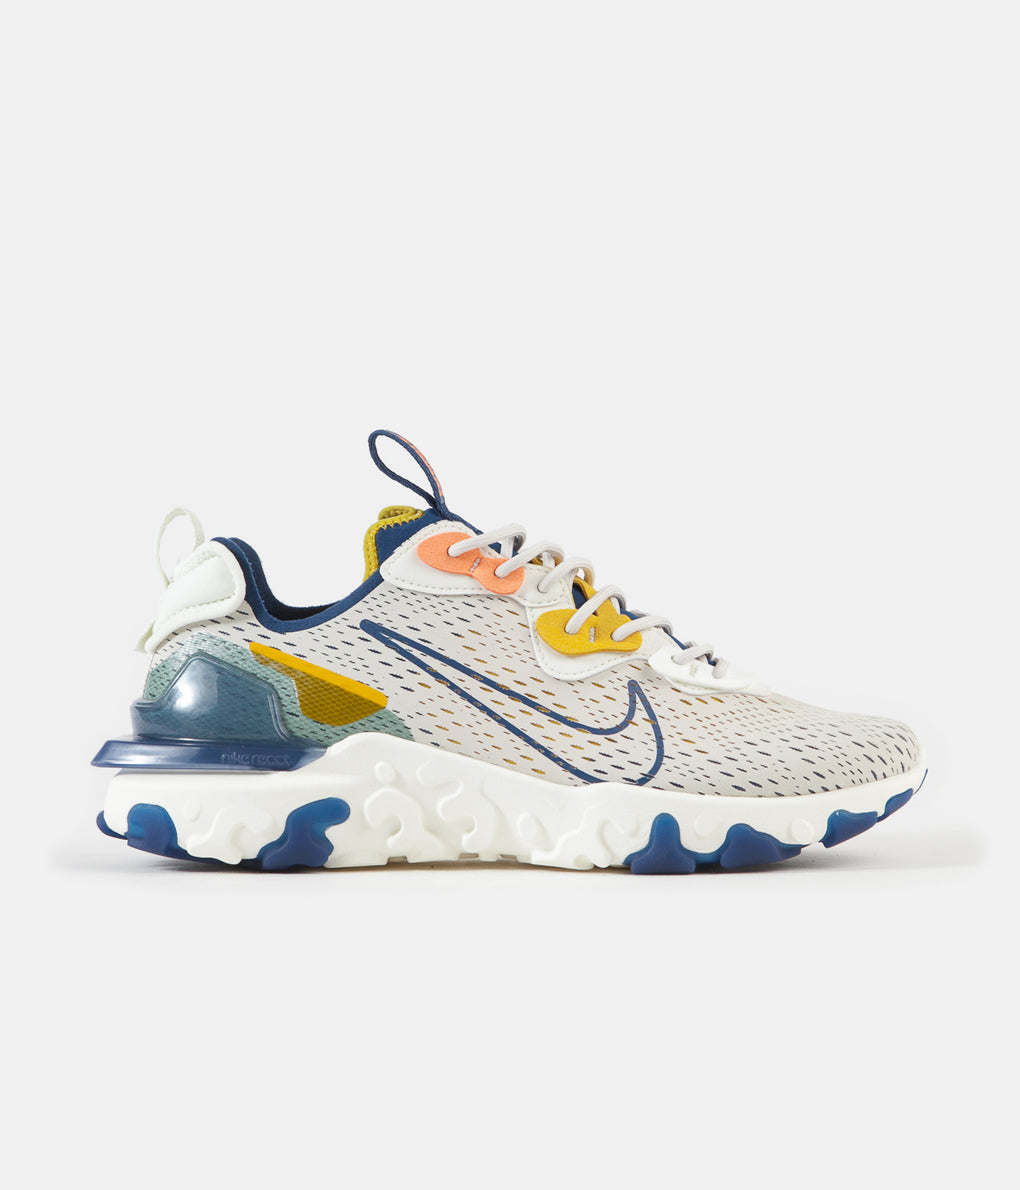 Nike React Vision Shoes - Light Orewood Brown / Coastal Blue - Sail